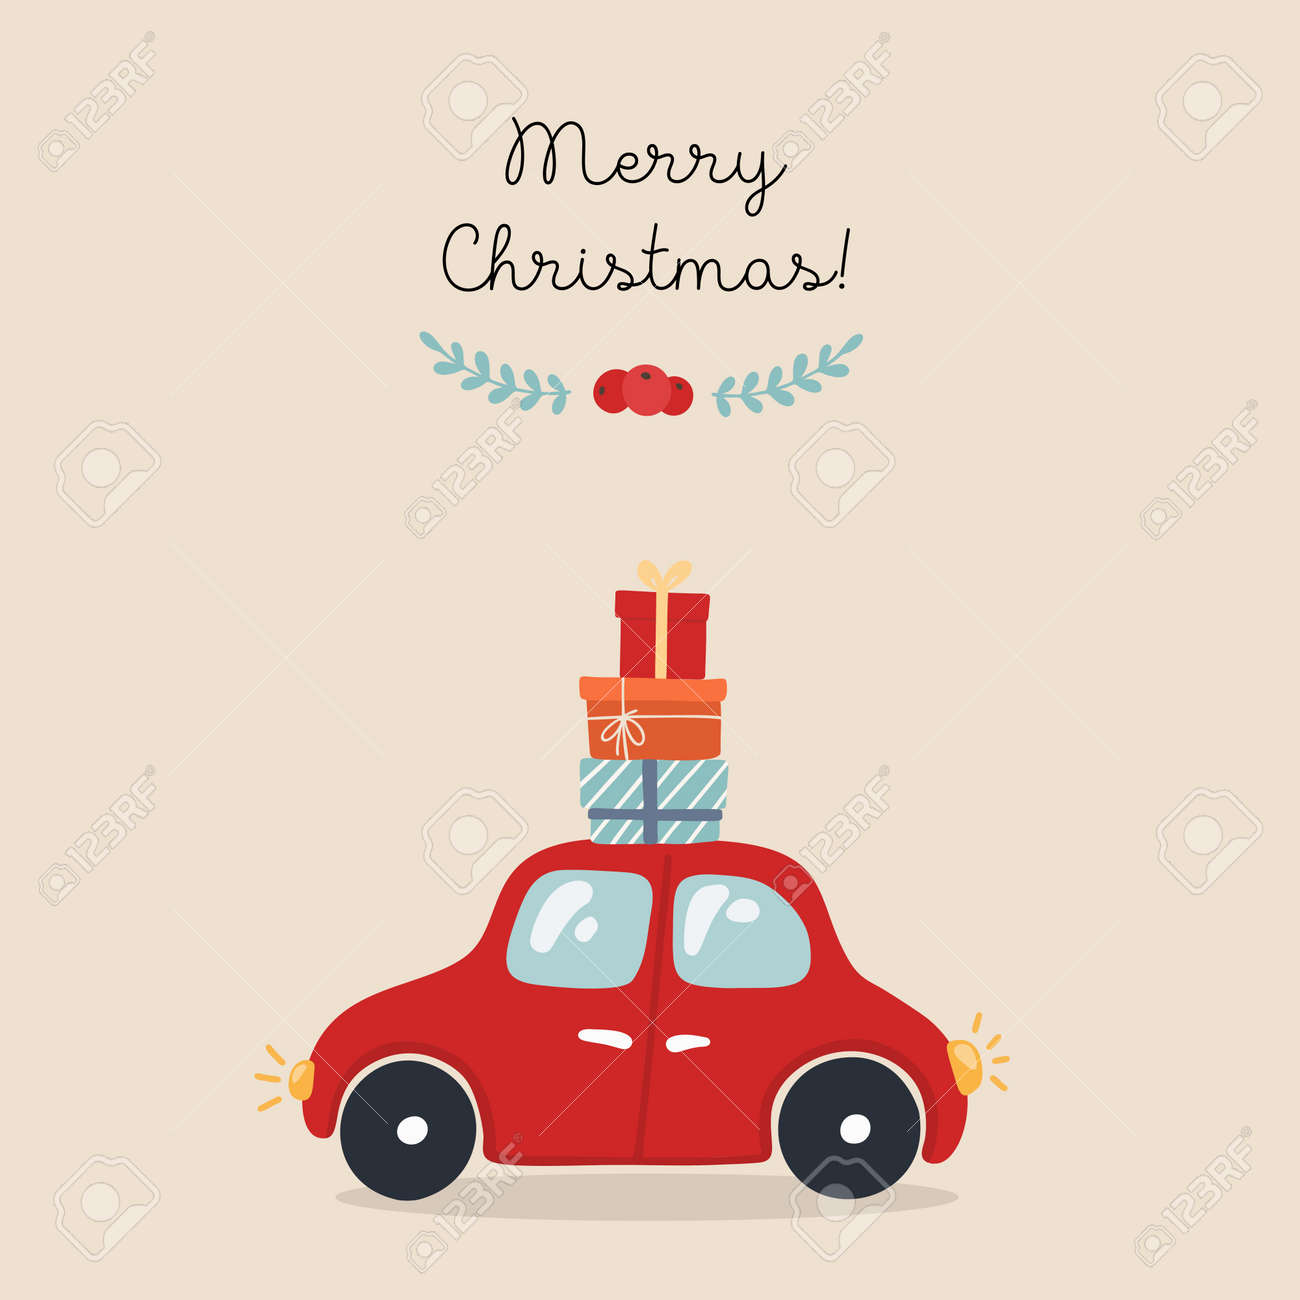 Christmas card with car, hand drawn style. Car with gifts. Vector illustration. - 132539938